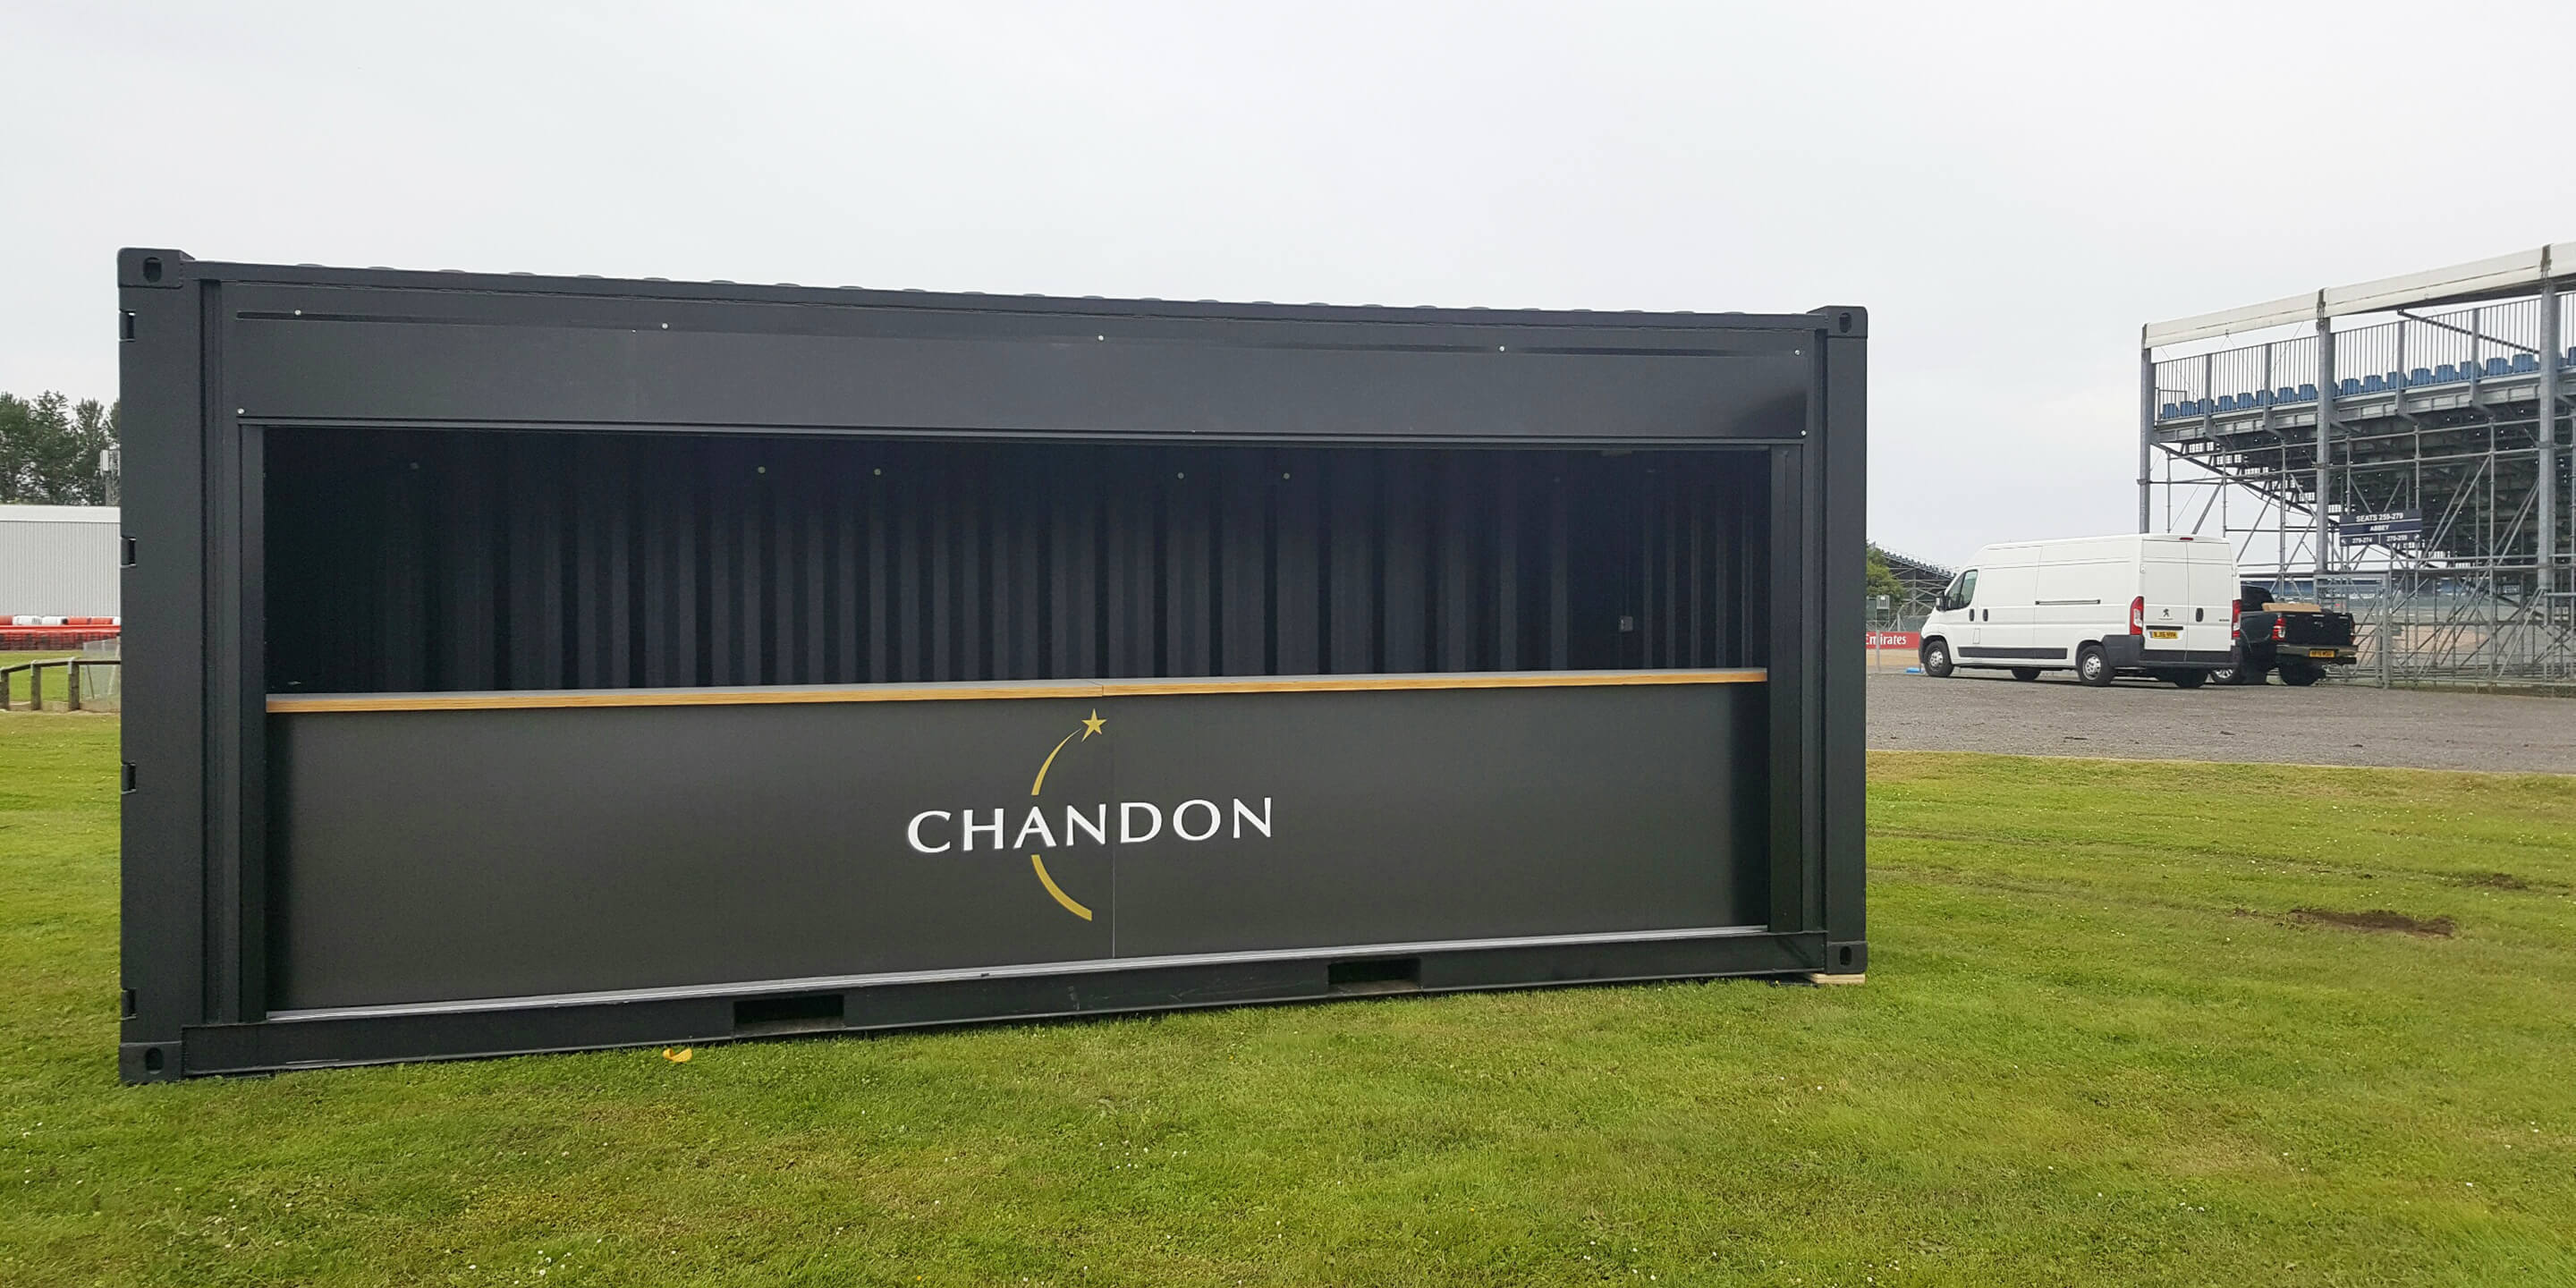 https://www.theeventsstructure.com/sites/default/files/2019-05/containerbar-chandon-2.jpg